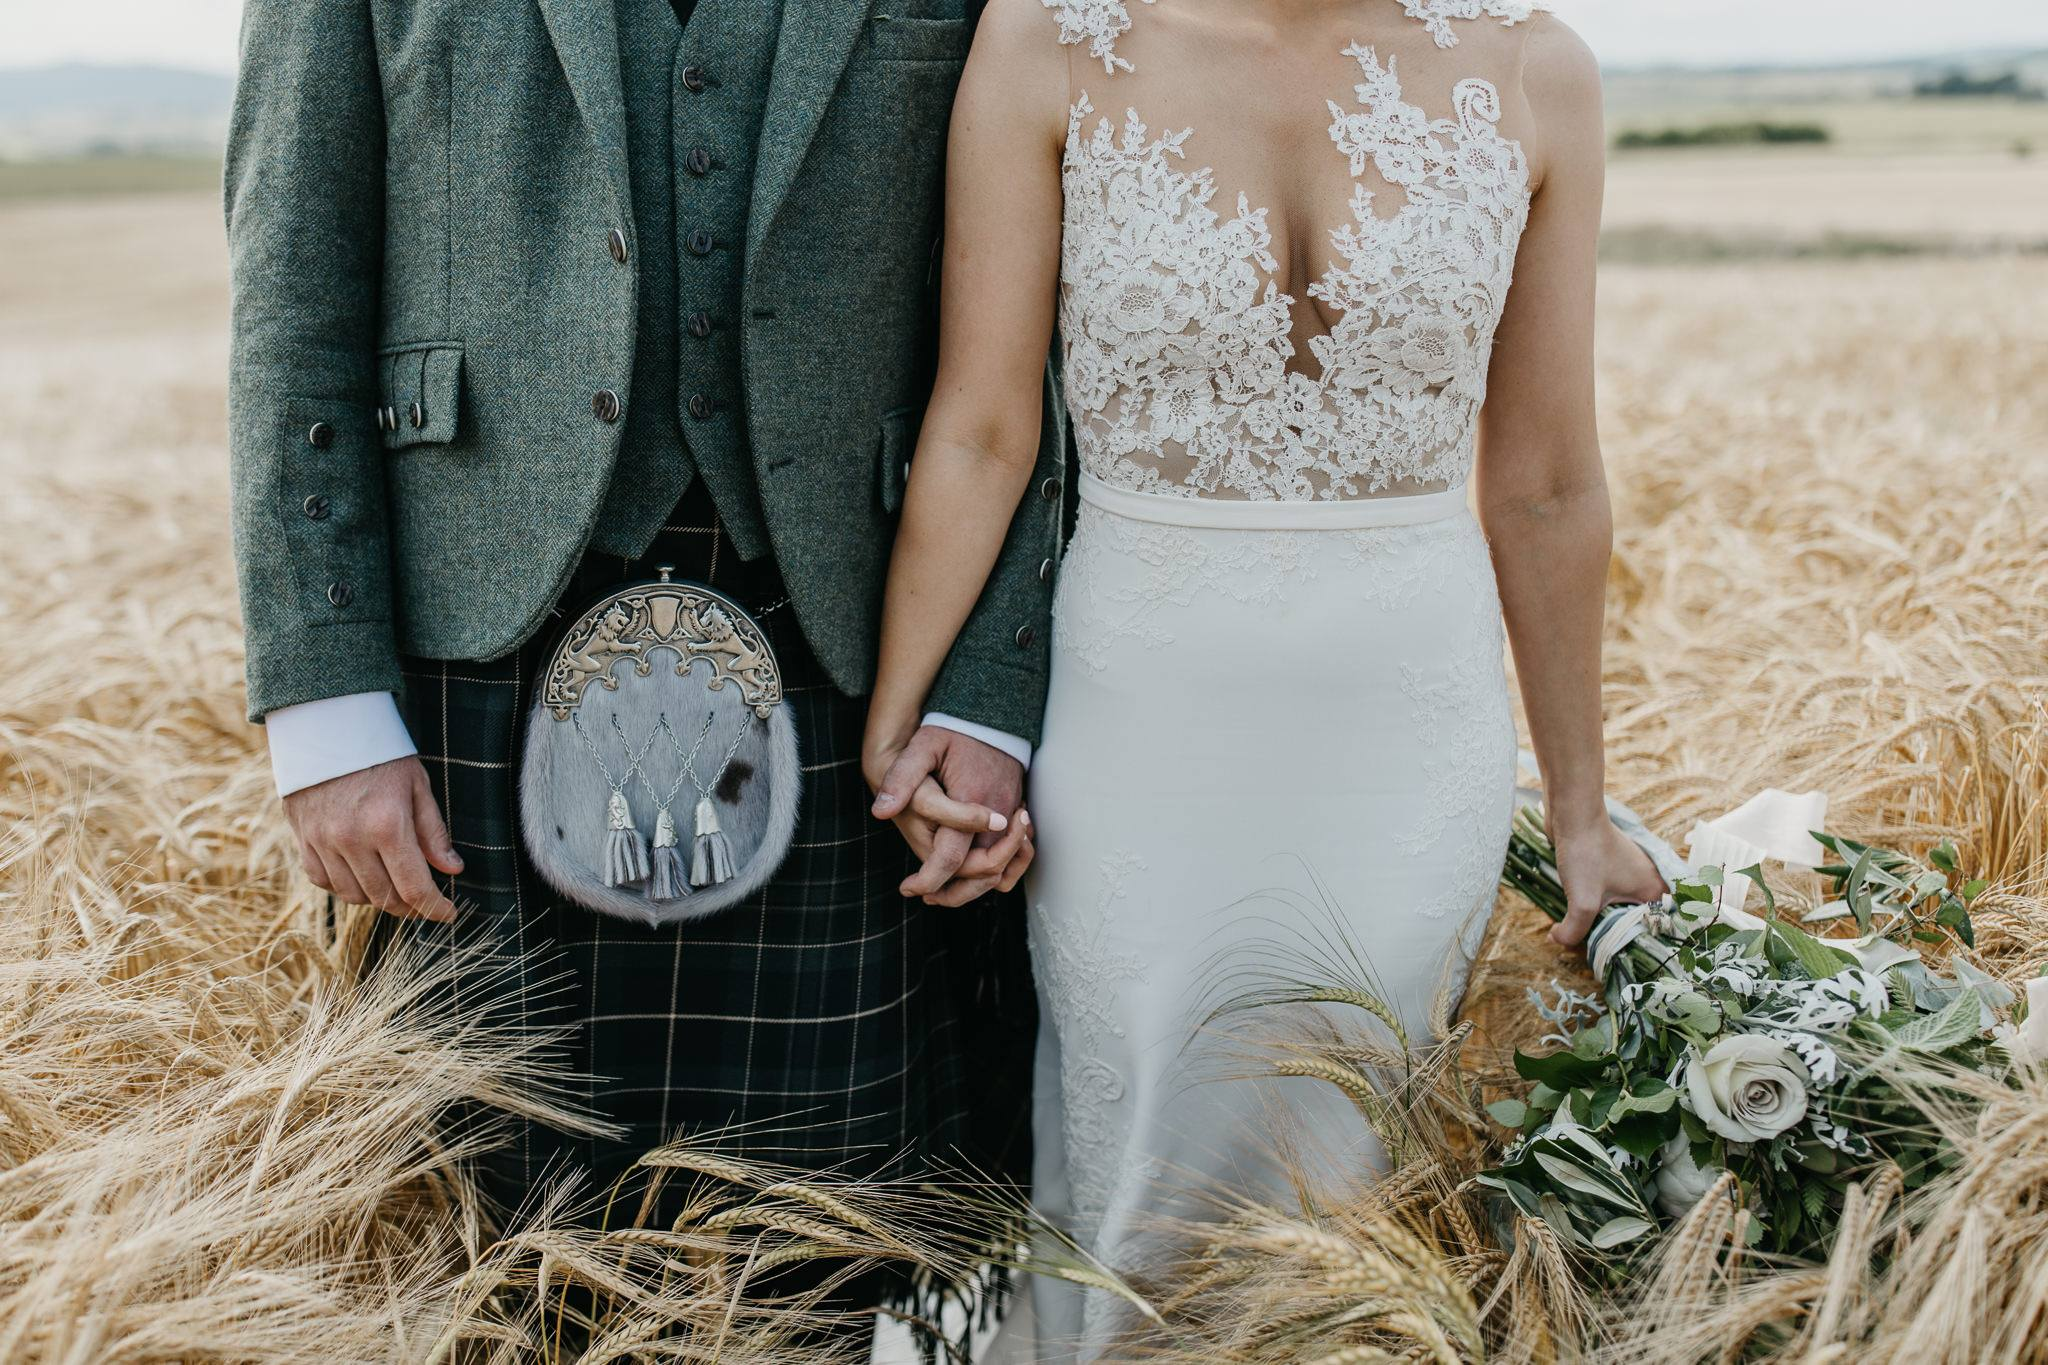 relaxed & creative wedding storytelling - Aberdeen wedding